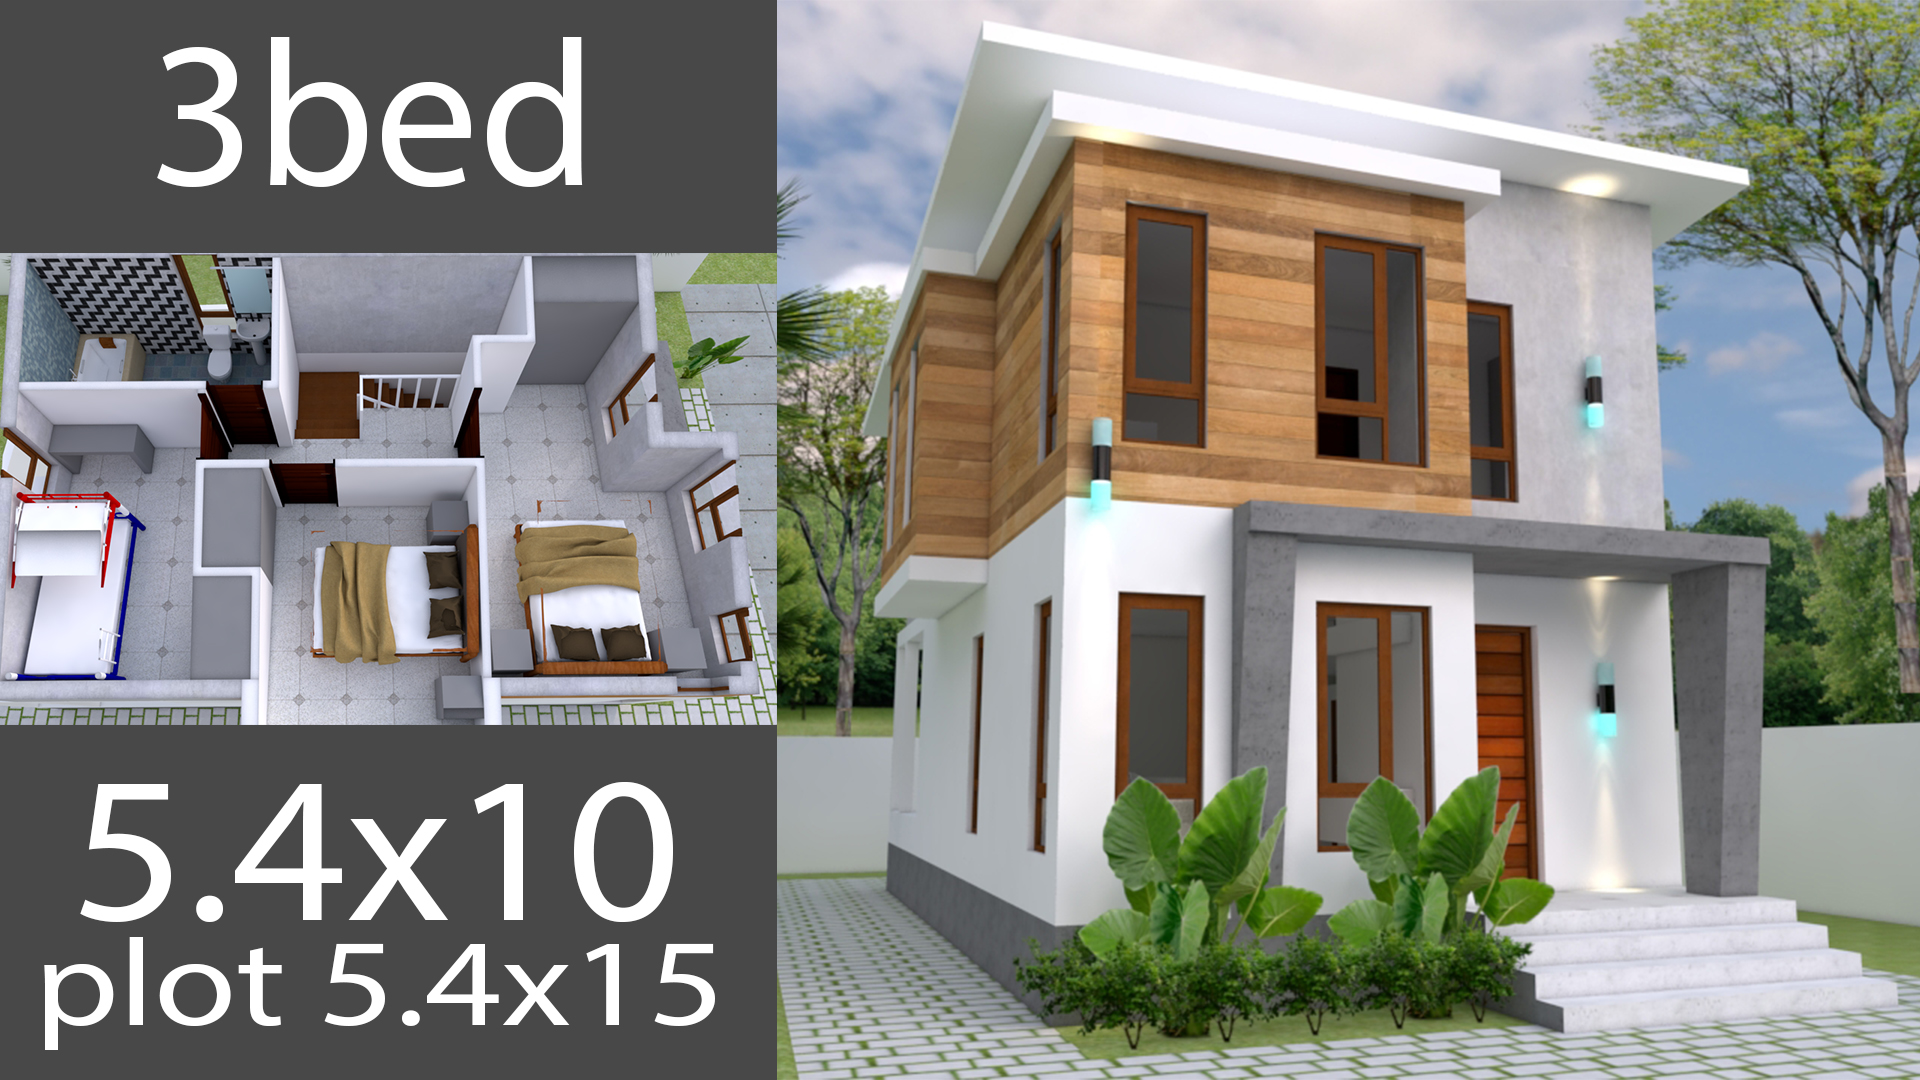 Small Home design Plan 5.4x10m with 3 Bedroom - Samphoas.Com